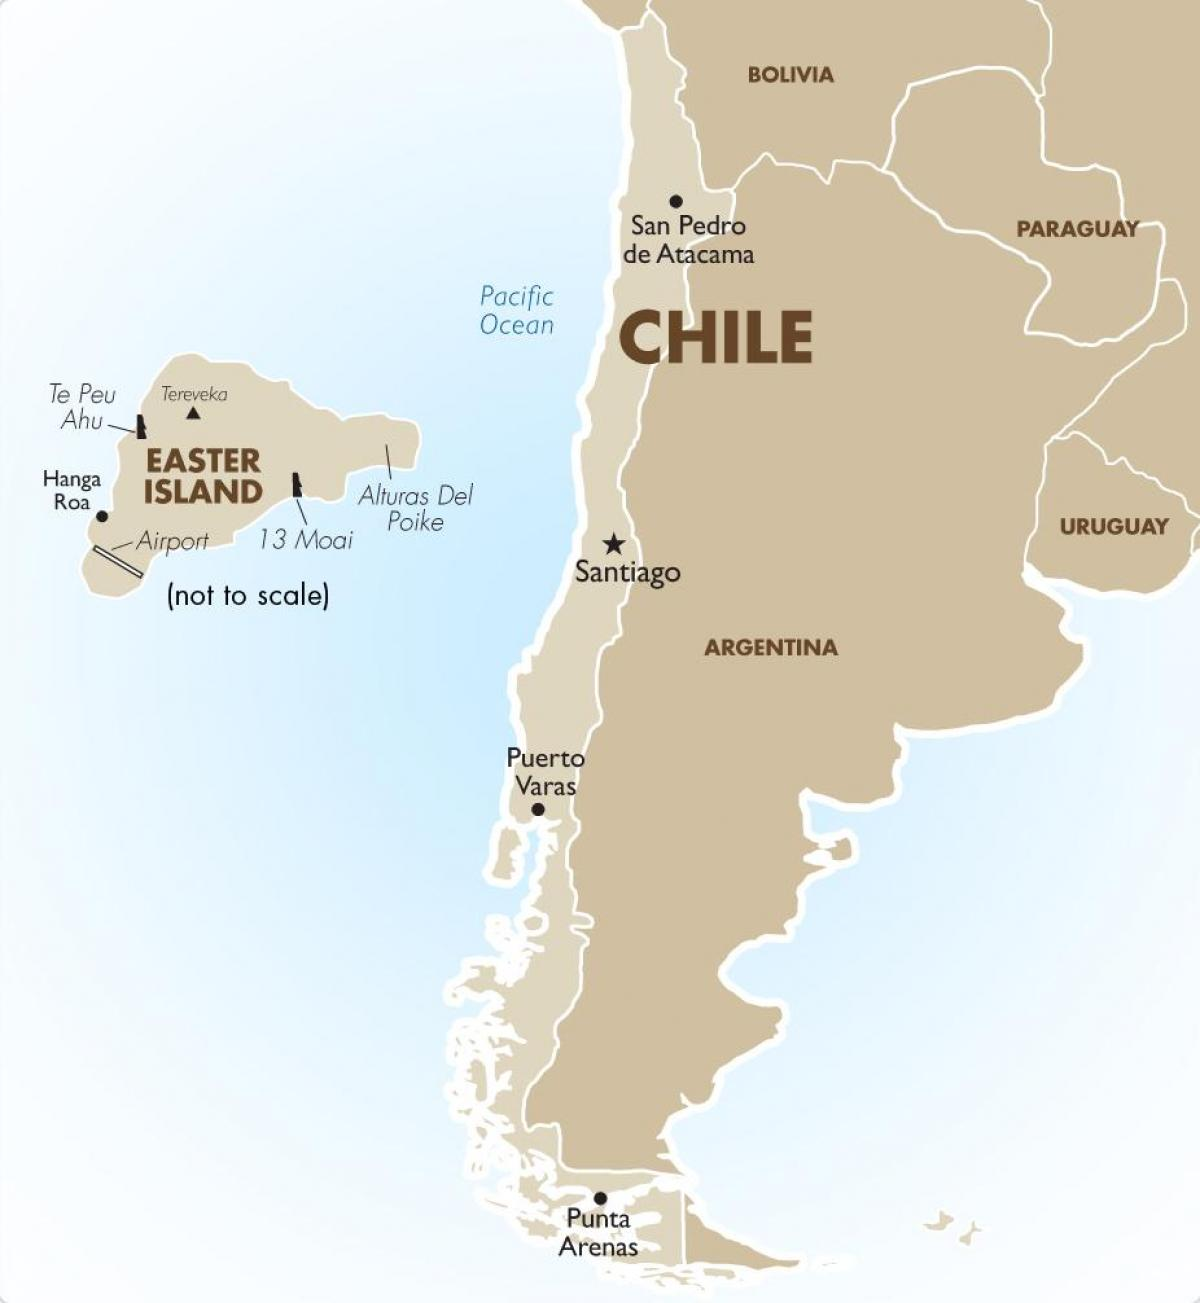 Chile's map